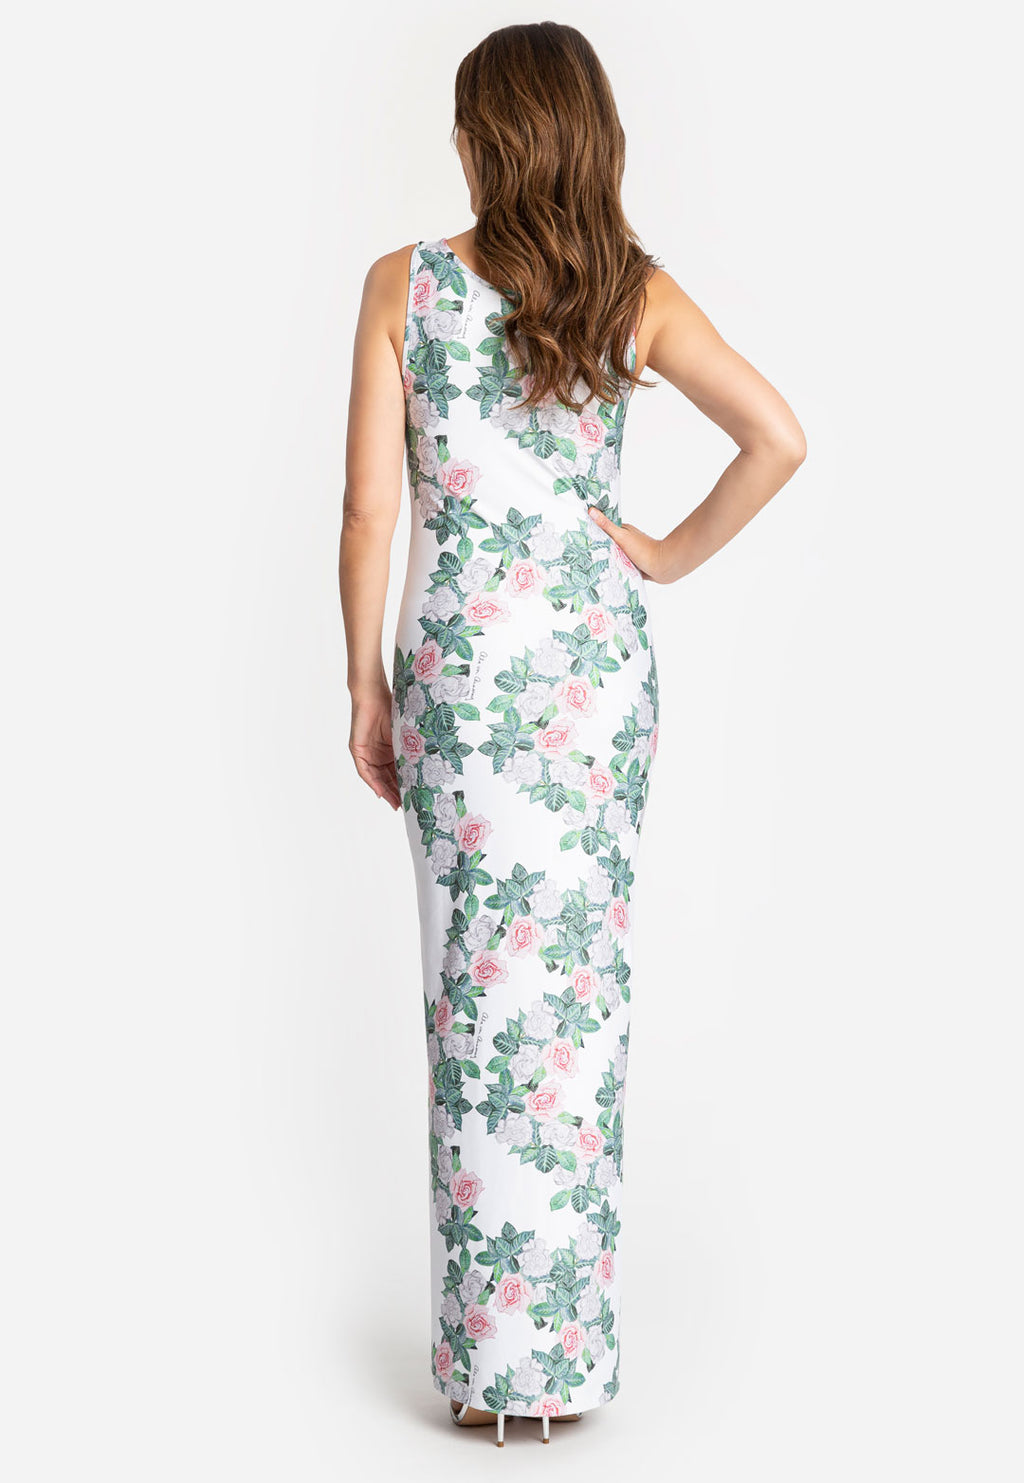 Lavinia Long Dress in Gardenia back view